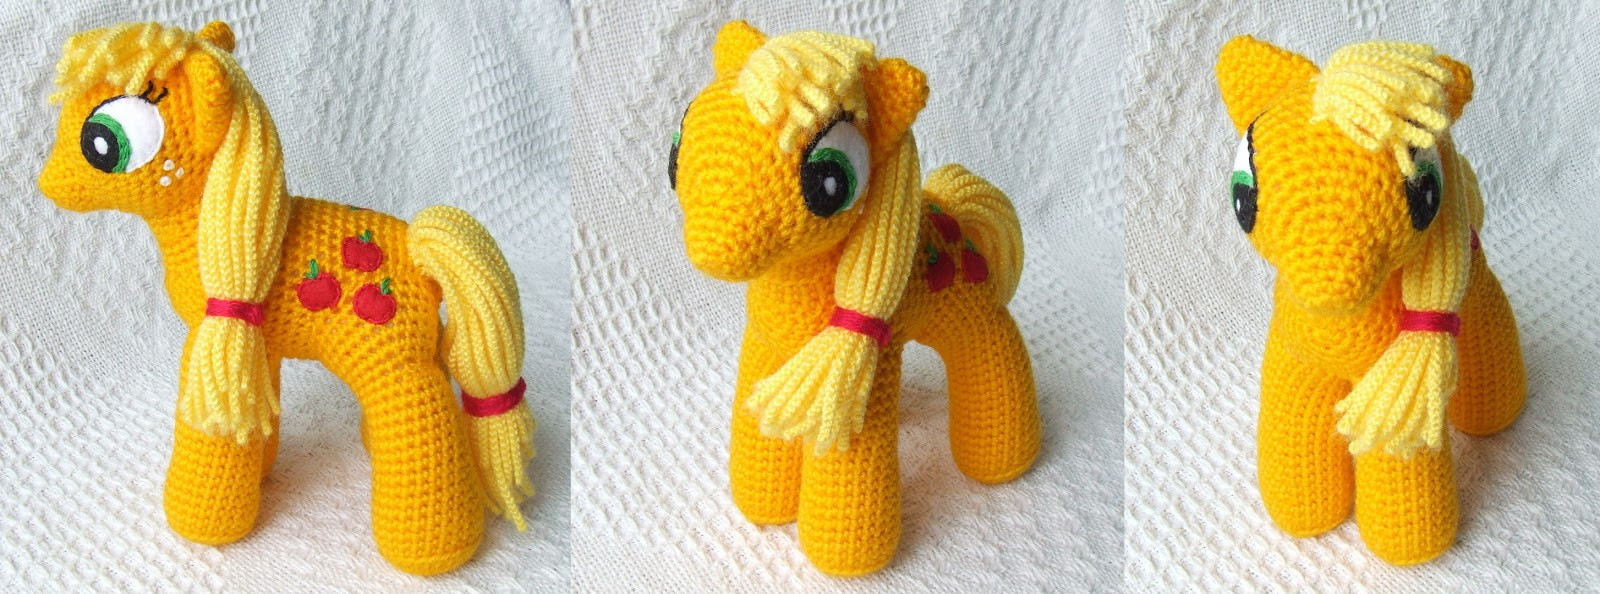 Best Of Knit E Awe some My Little Pony Friendship is Magic My Little Pony Crochet Pattern Of Brilliant 49 Ideas My Little Pony Crochet Pattern